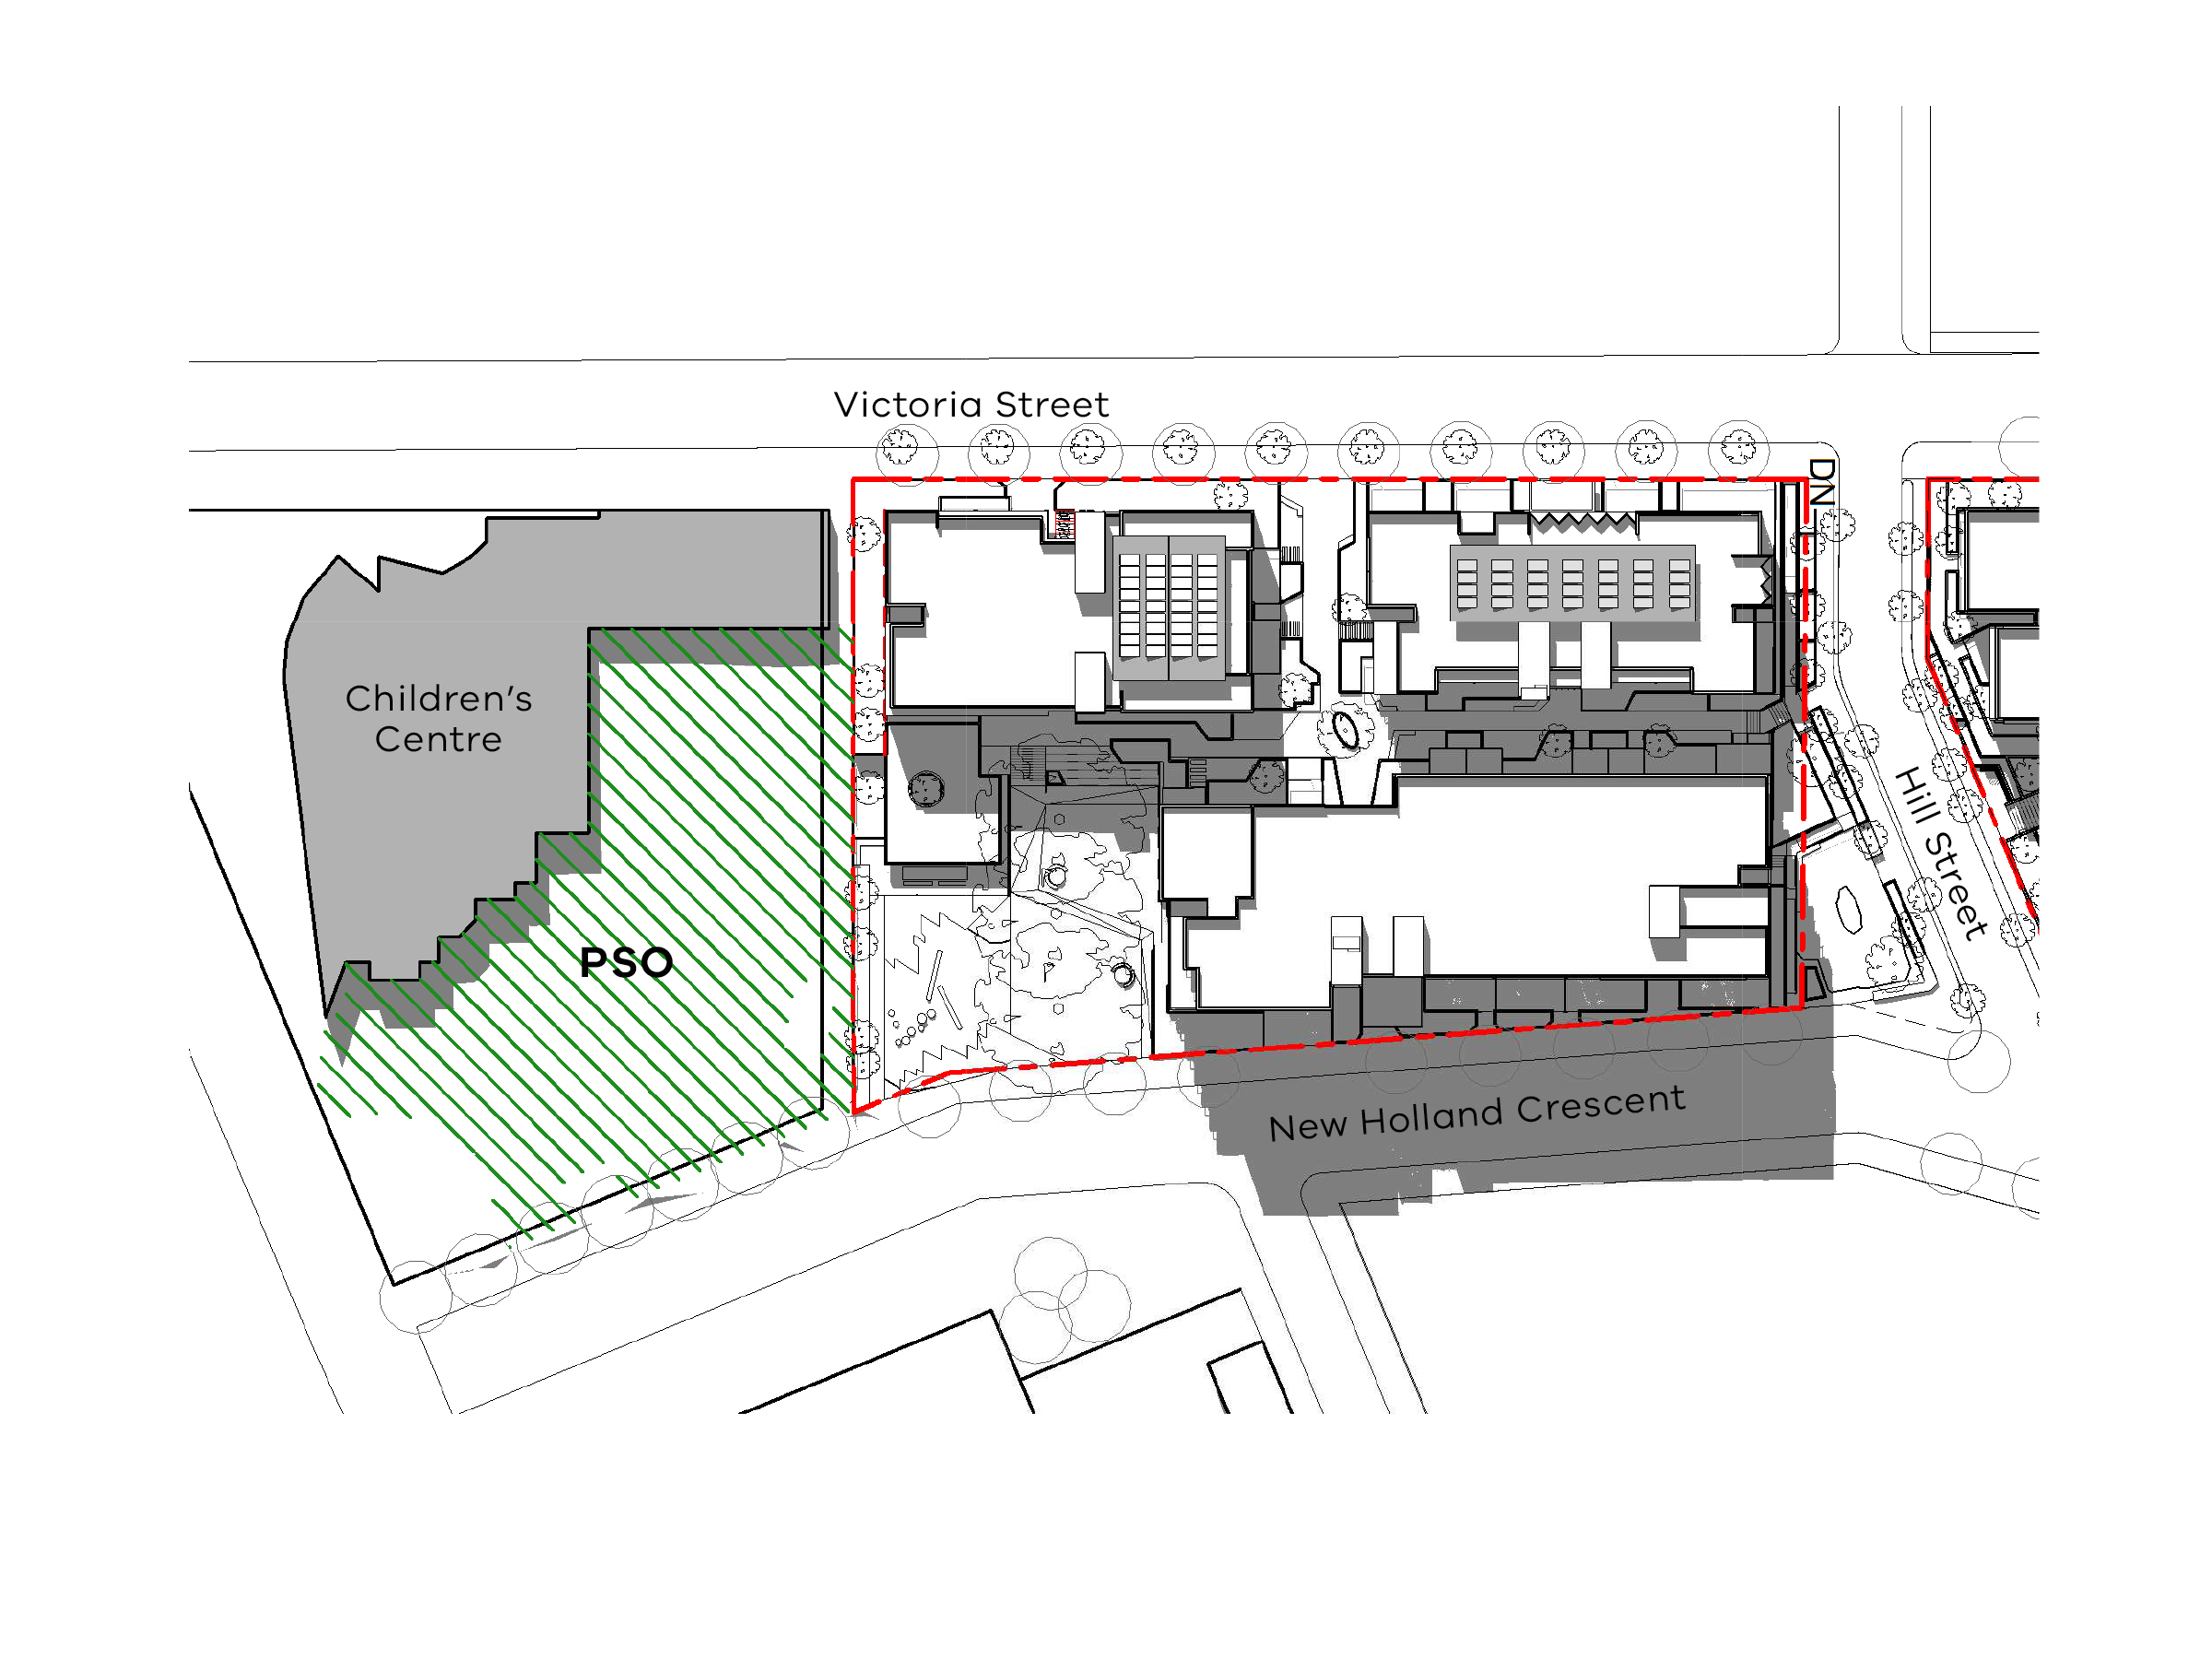 Diagram showing the shadows created by the south site of the new development in December 3pm